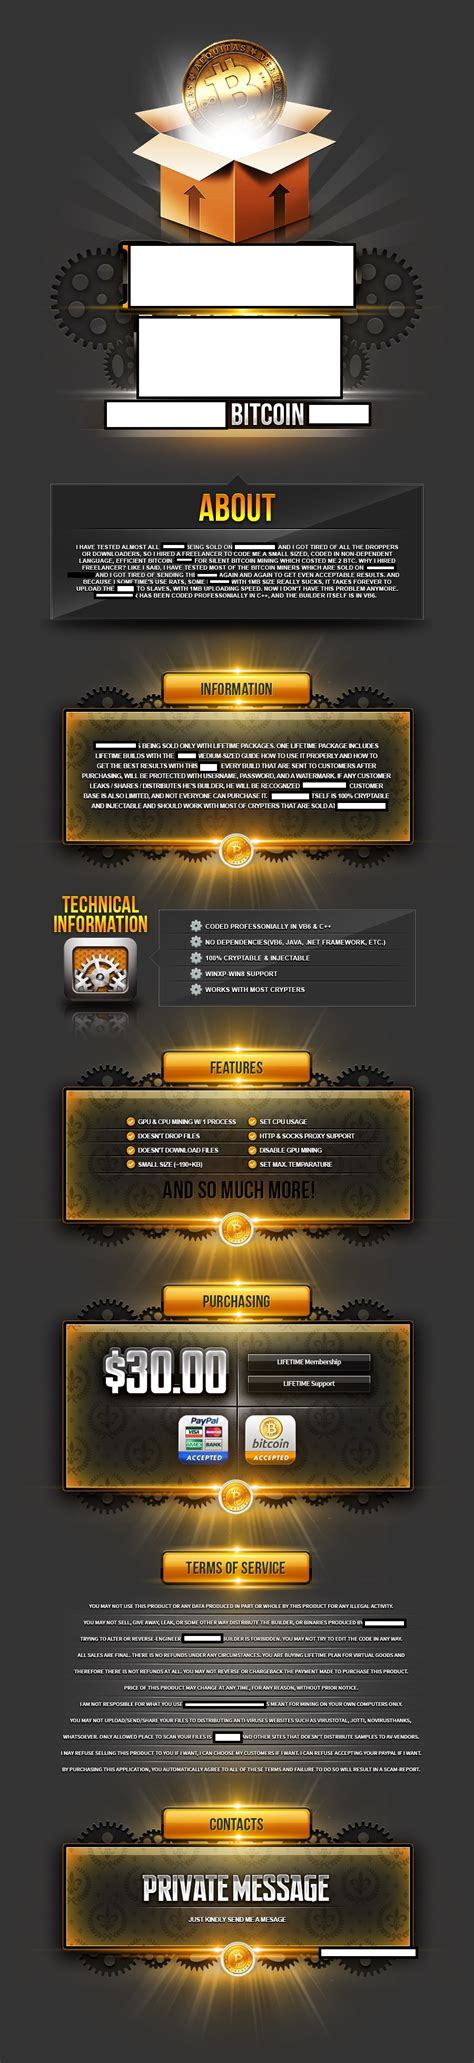 web based bitcoin miner bitcoin miner proxy support new stratum getwork proxy with